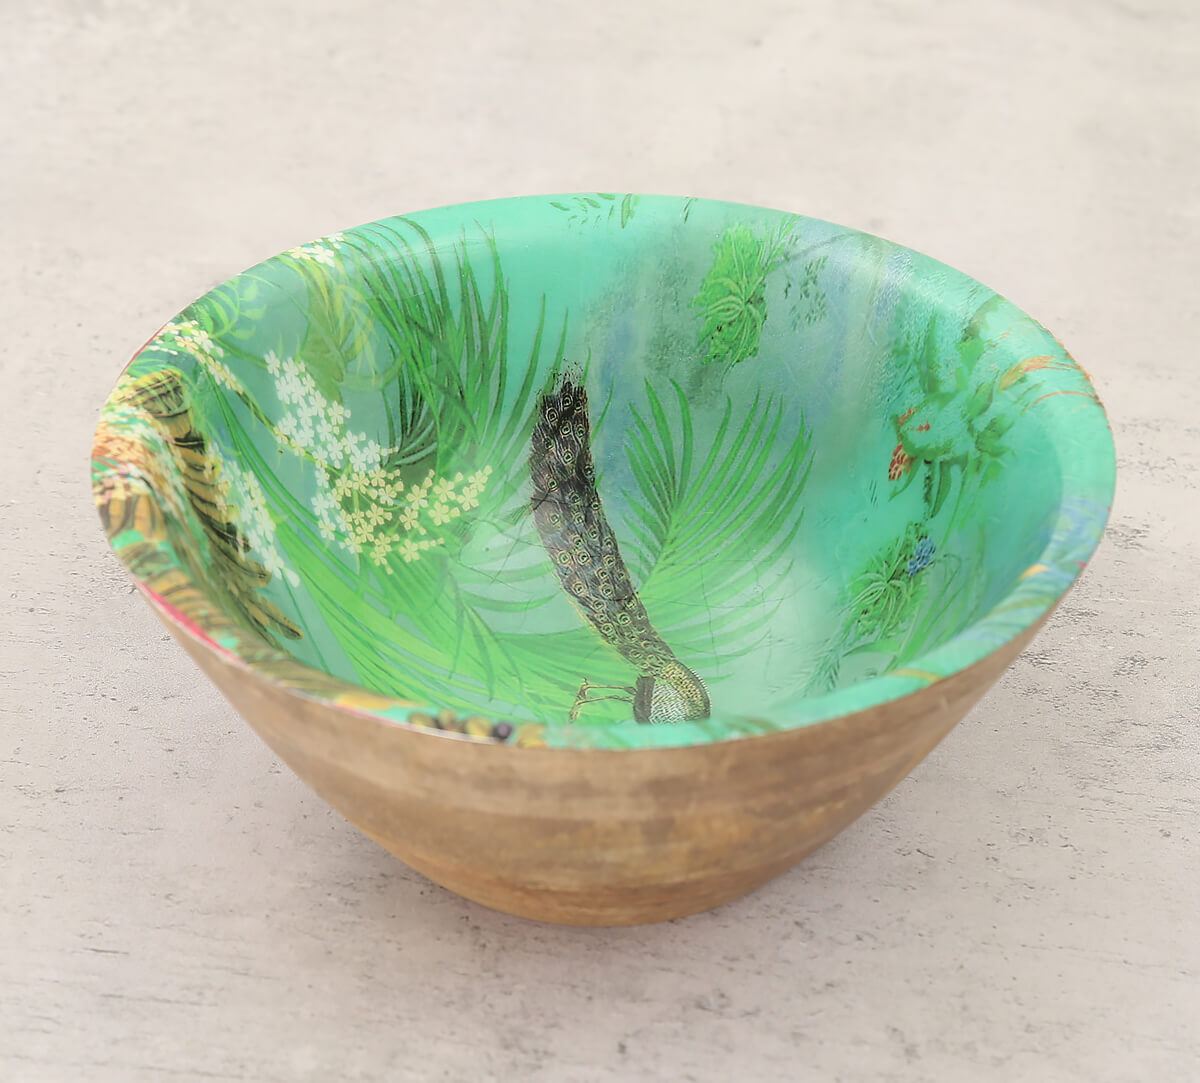 The Peacock Throne Wooden Bowl